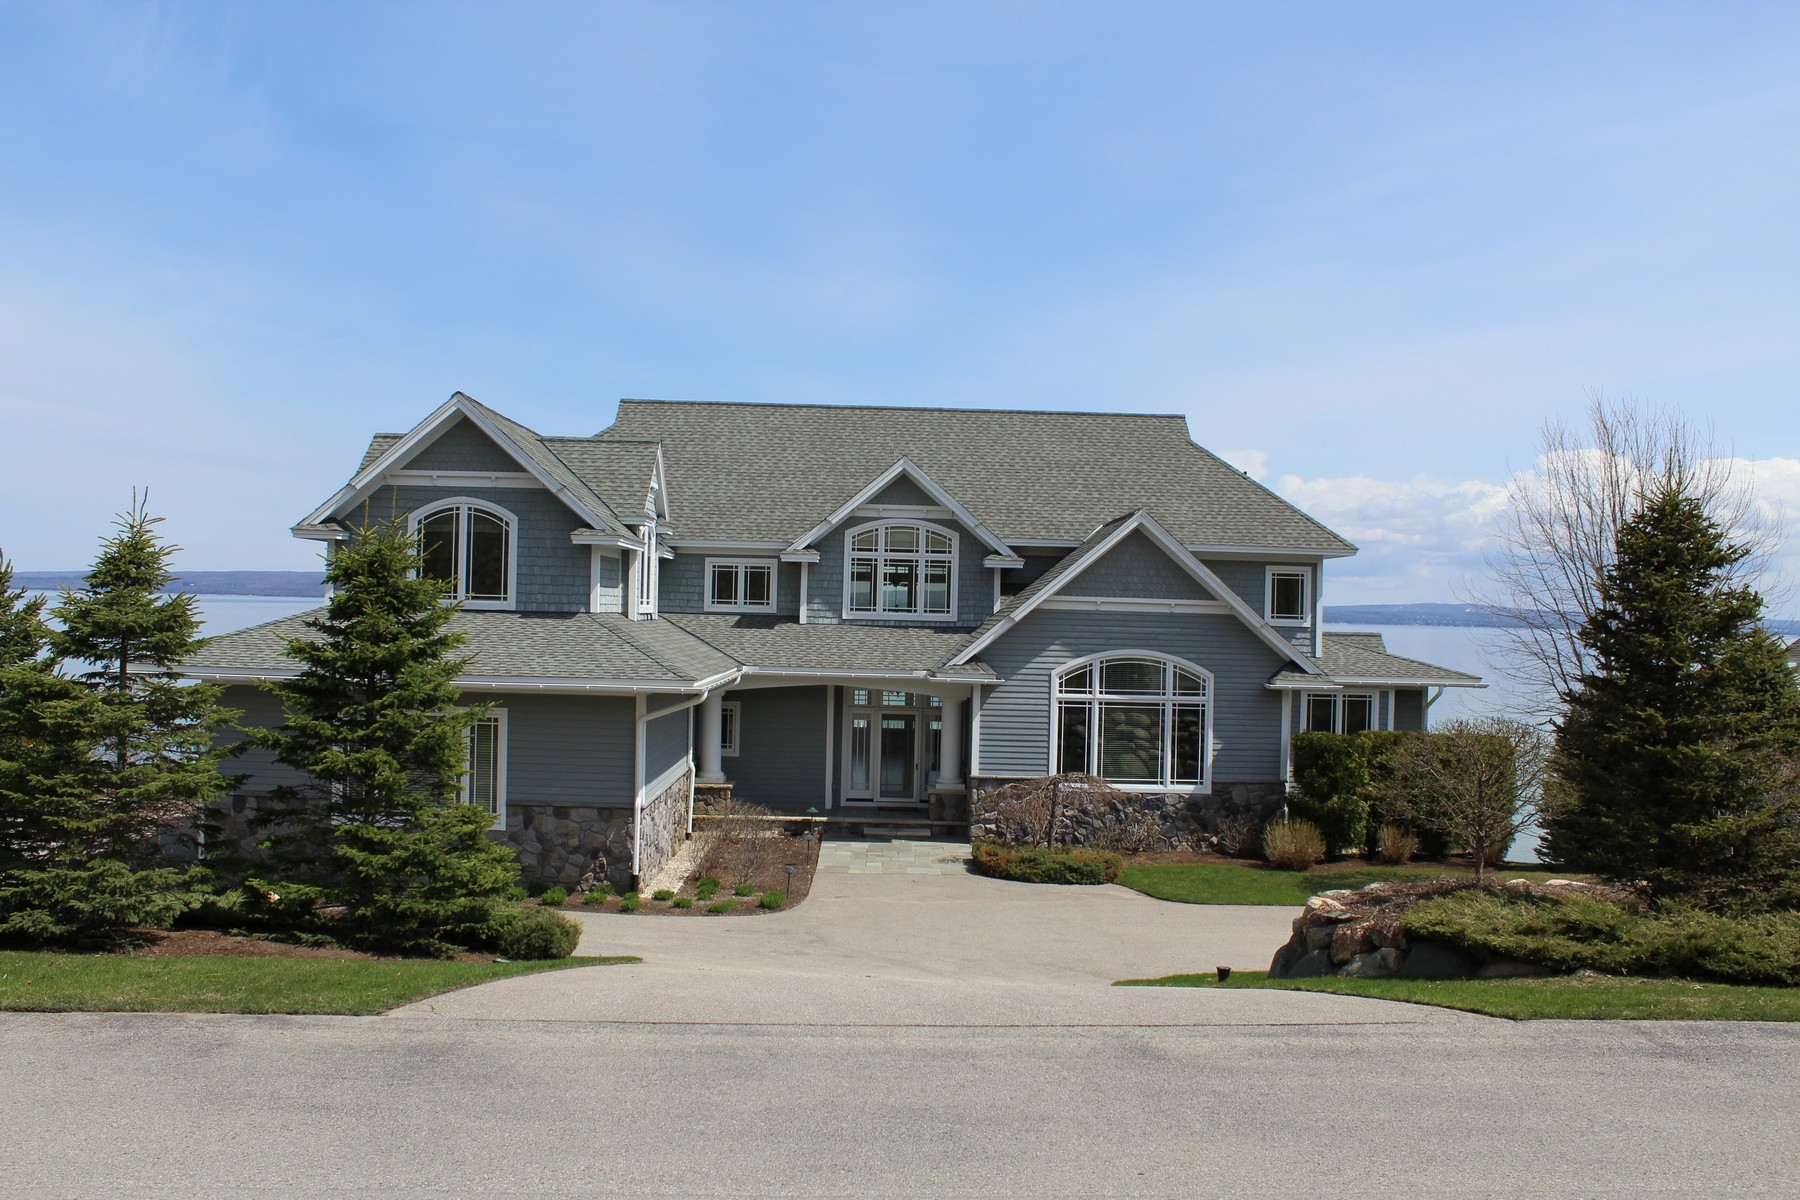 Single Family Home for Sale at Coastal Waterfront Home 5162 Coastal Drive Bay Harbor, Michigan 49770 United States